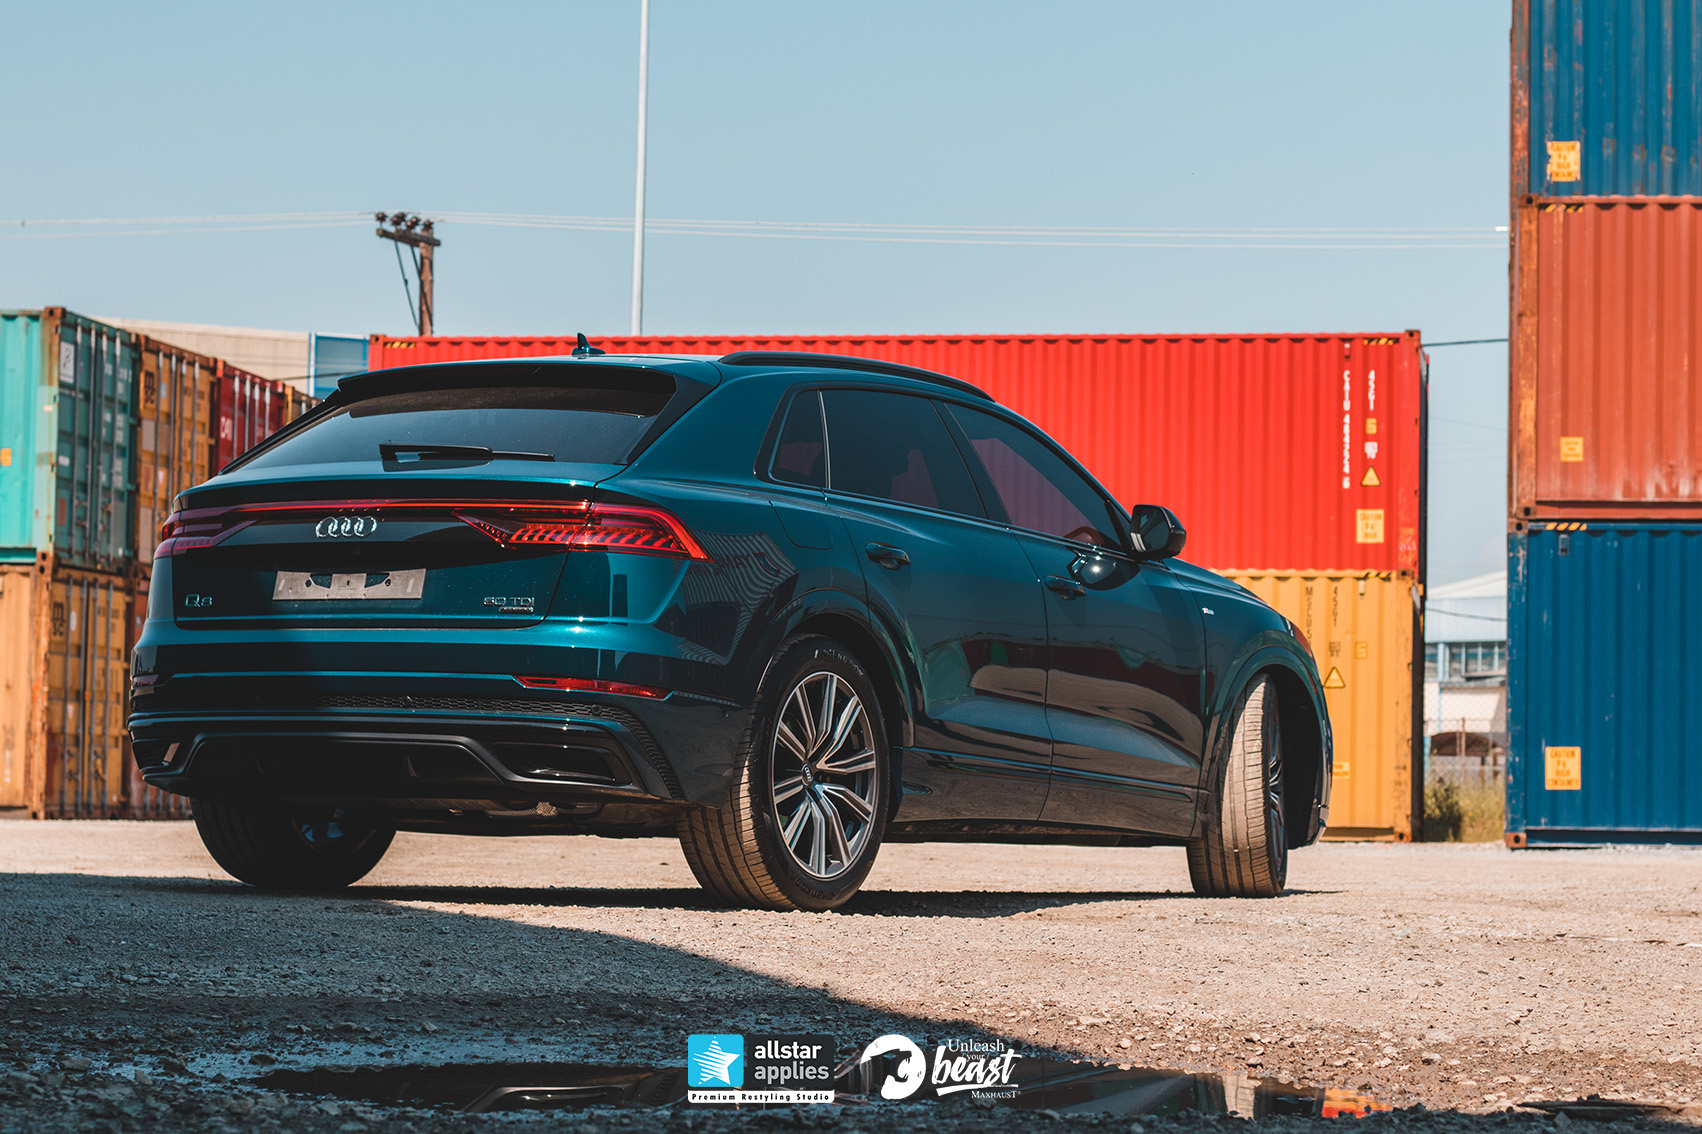 AUDI Q8 MAXHAUST ALLSTAR APPLIES (23)